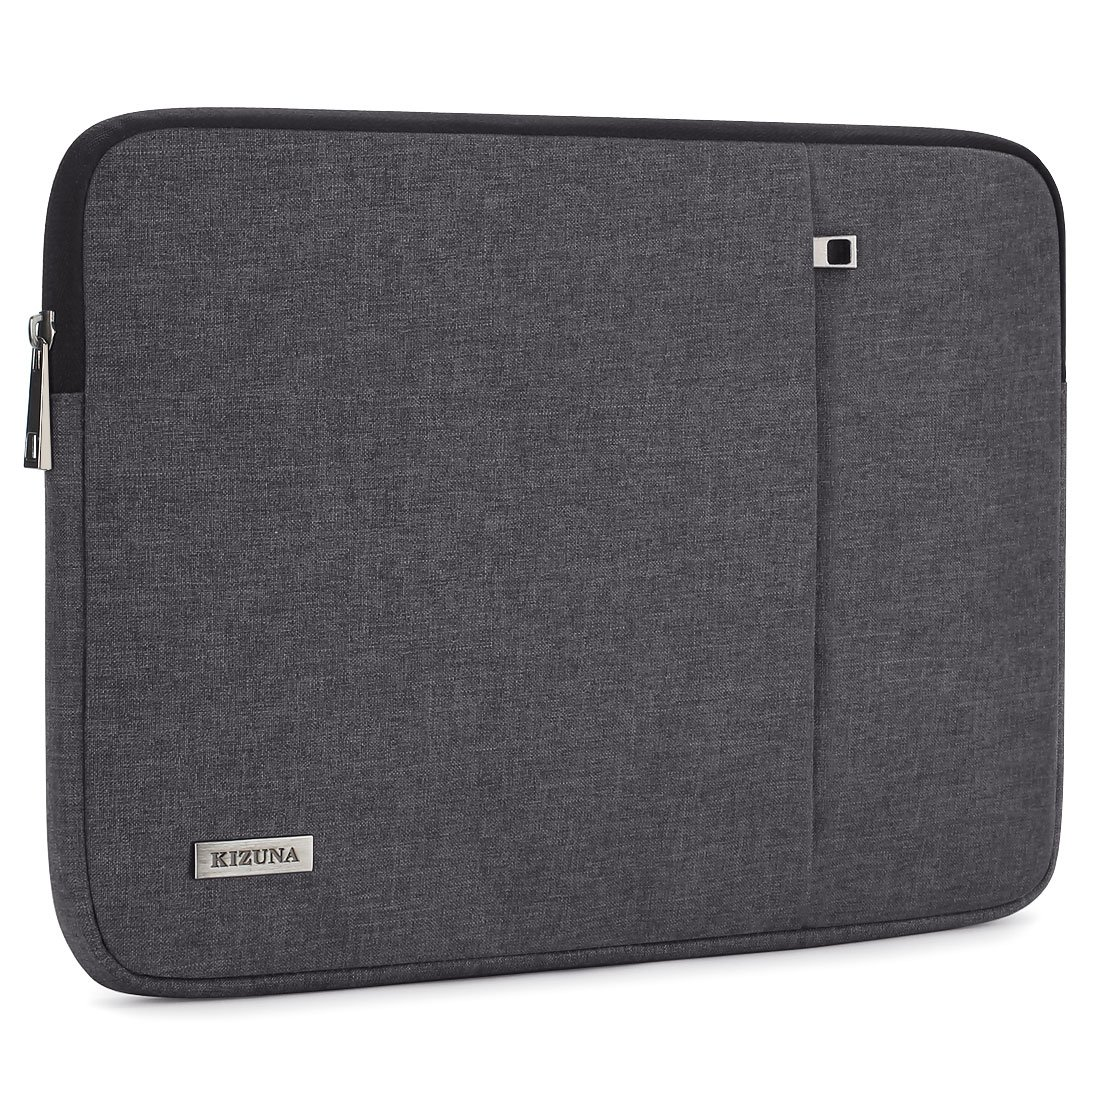 """KIZUNA 10 inch Laptop Sleeve case Water Resistant Tablet Handle Bag for 10.5 inch iPad Pro / 2017 New 9.7 inch iPad / 9.7 inch iPad Pro / 10.1"""" Lenovo Yoga Tab 3 Tablet / 10.1"""" Lenovo YOGA BOOK, Black"""